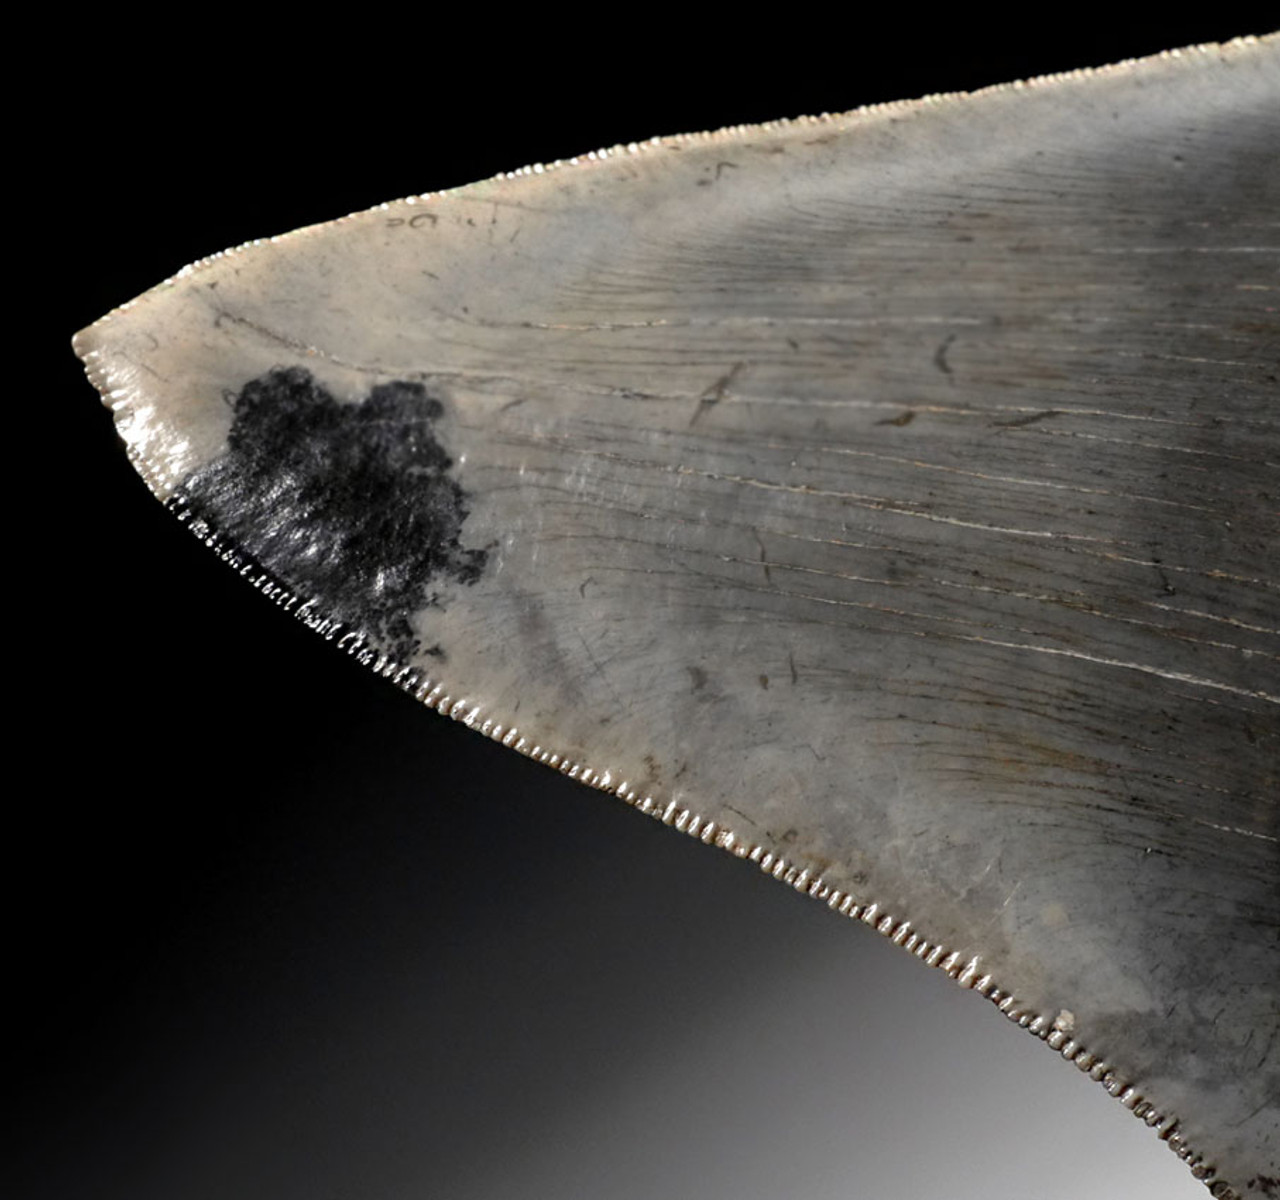 SH6-291 -  INVESTMENT CLASS NEARLY 6 INCH MEGALODON SHARK TOOTH